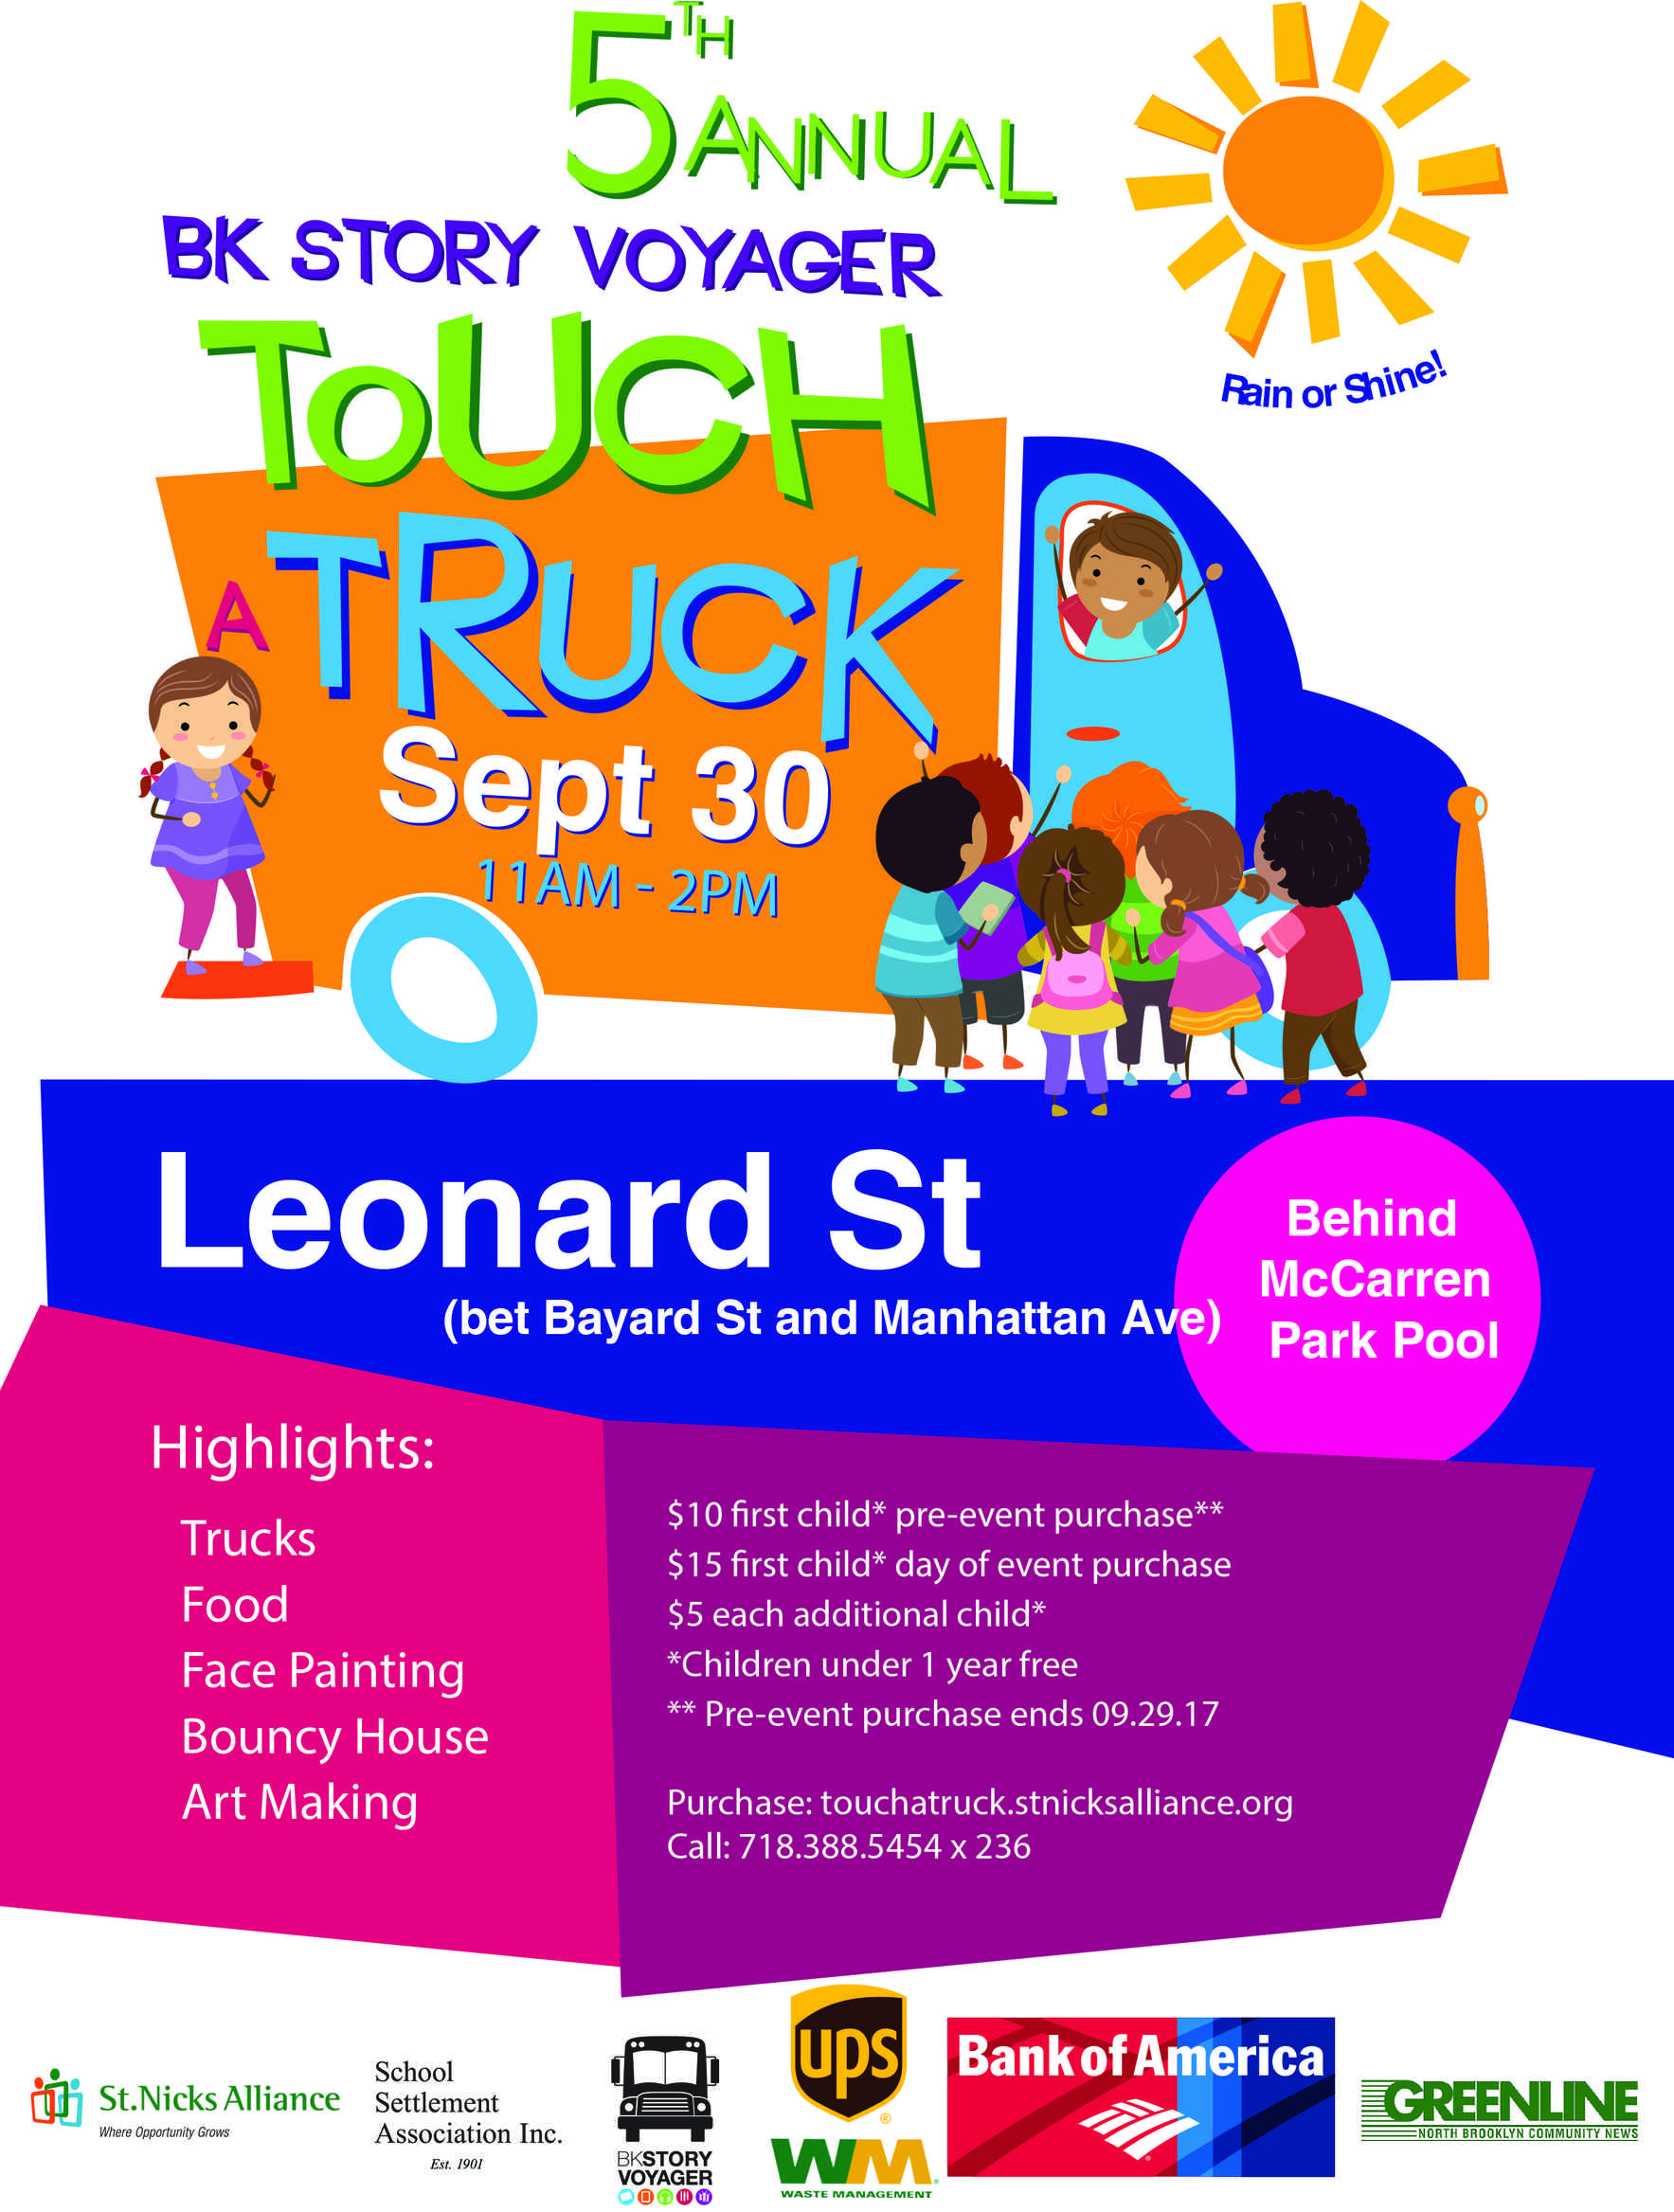 5th Annual BK Story Voyager Touch a Truck! - Save $5 on Tickets Before 9/29! image